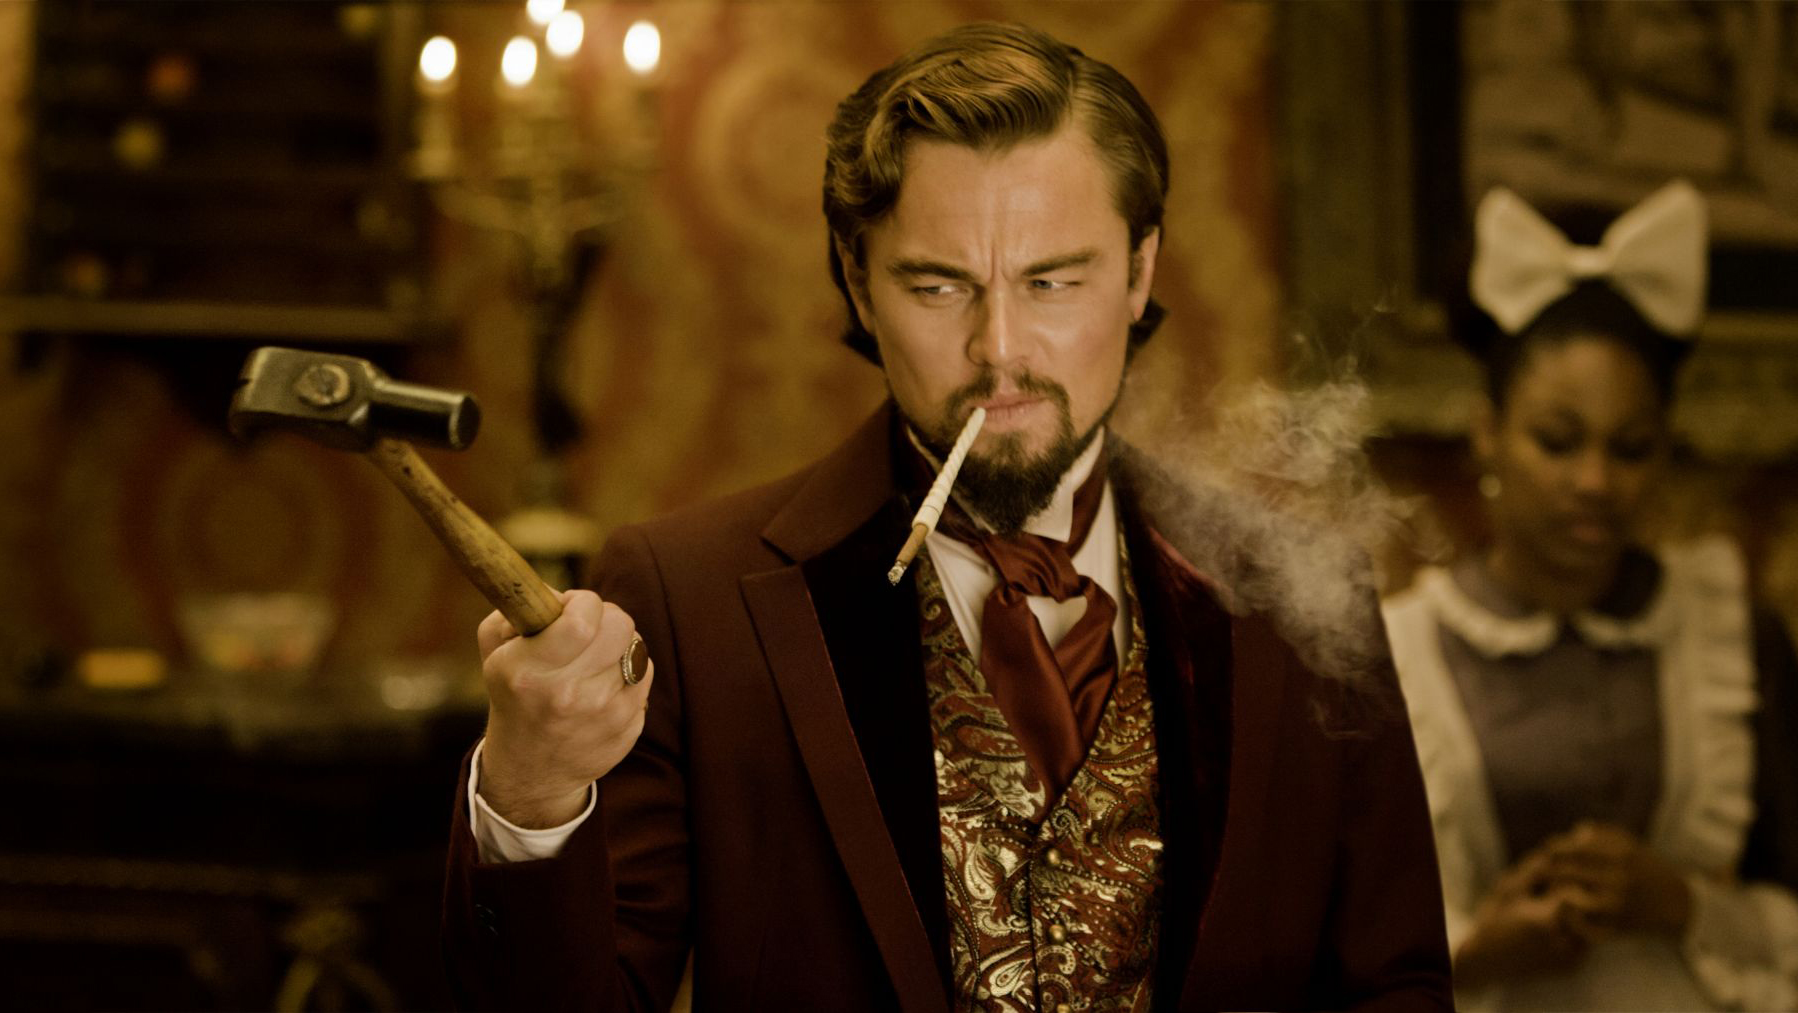 DJANGO UNCHAINED (Quentin Tarantino, US) - Cinema Scope